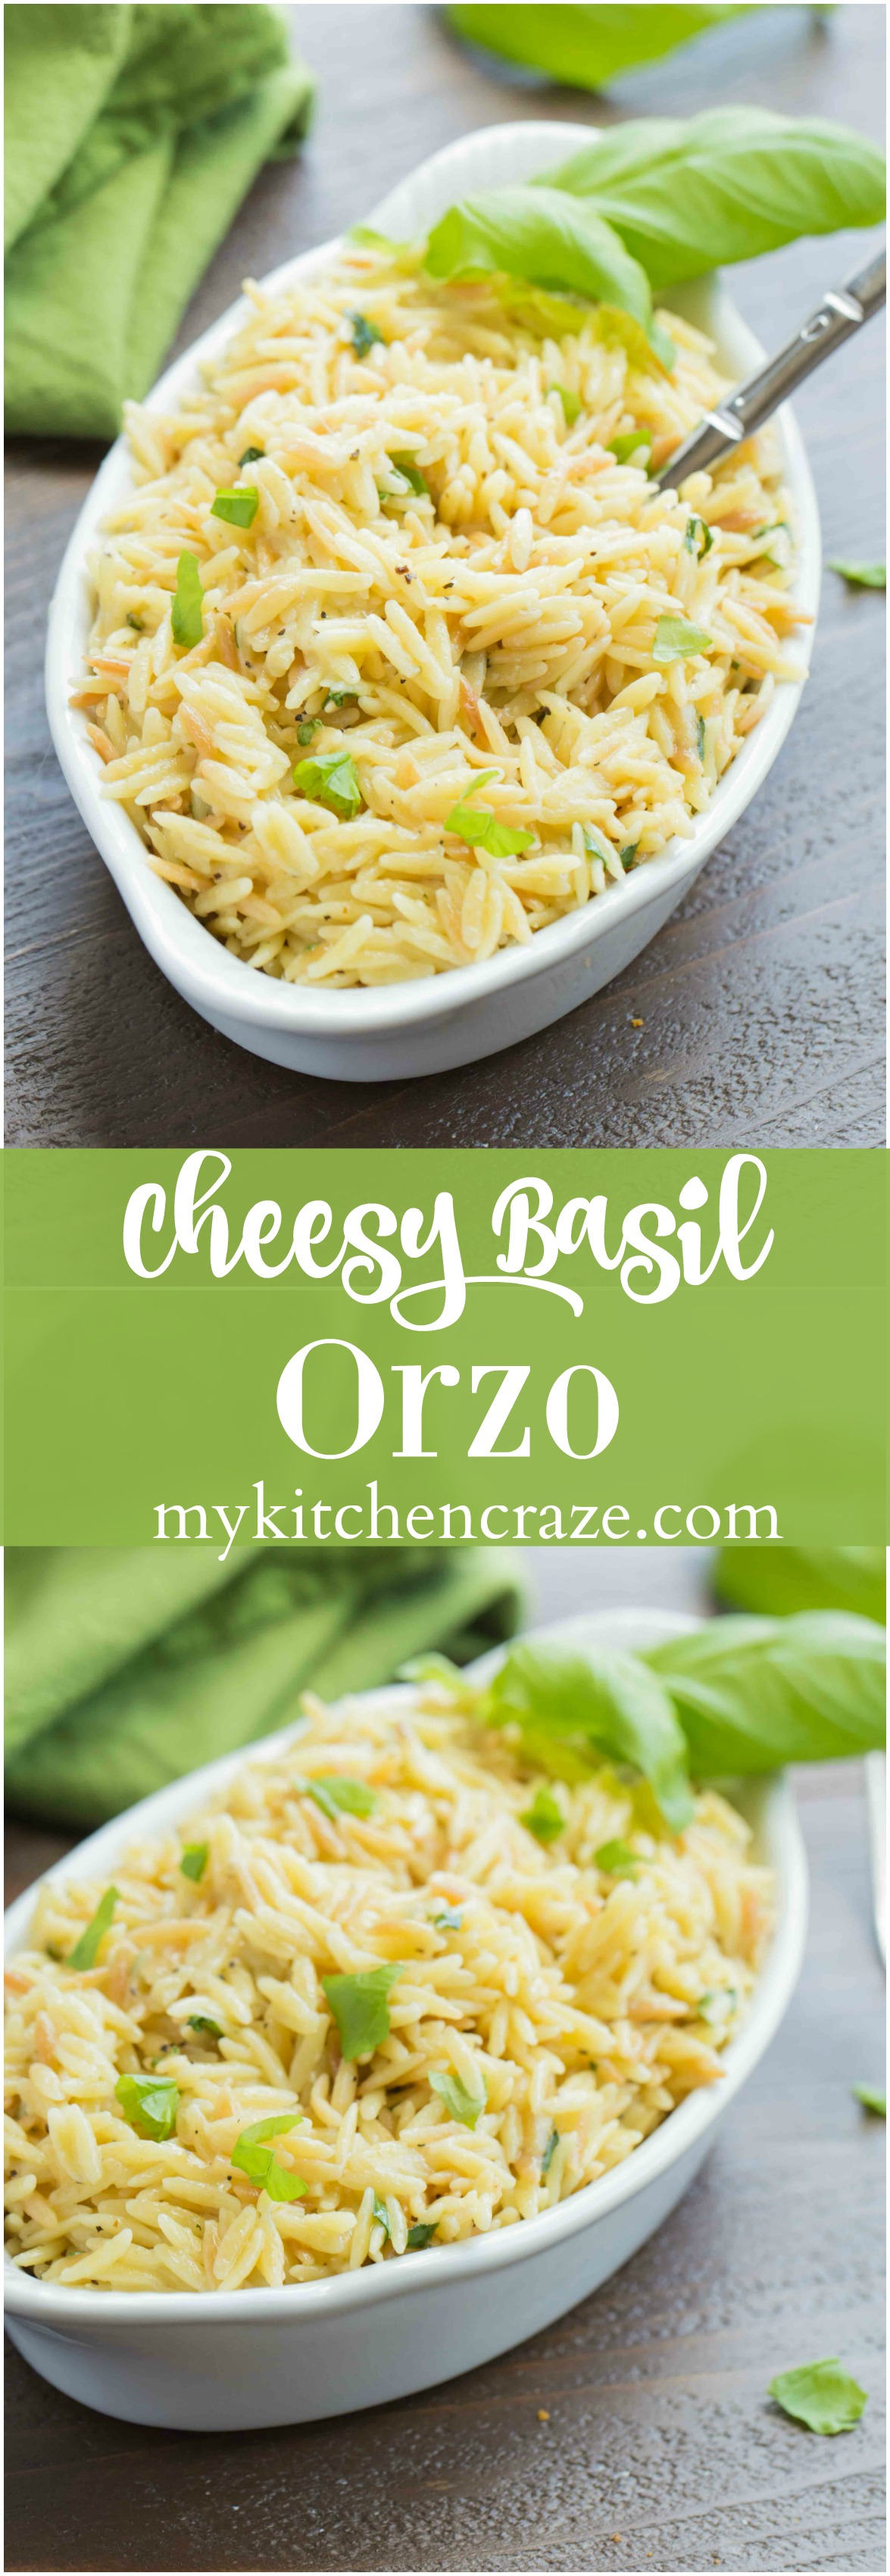 Cheesy Basil Orzo ~ Just 6 ingredients are all you need to make this fresh pasta side. The lemon and basil brighten the dish making it perfect for any main dish.